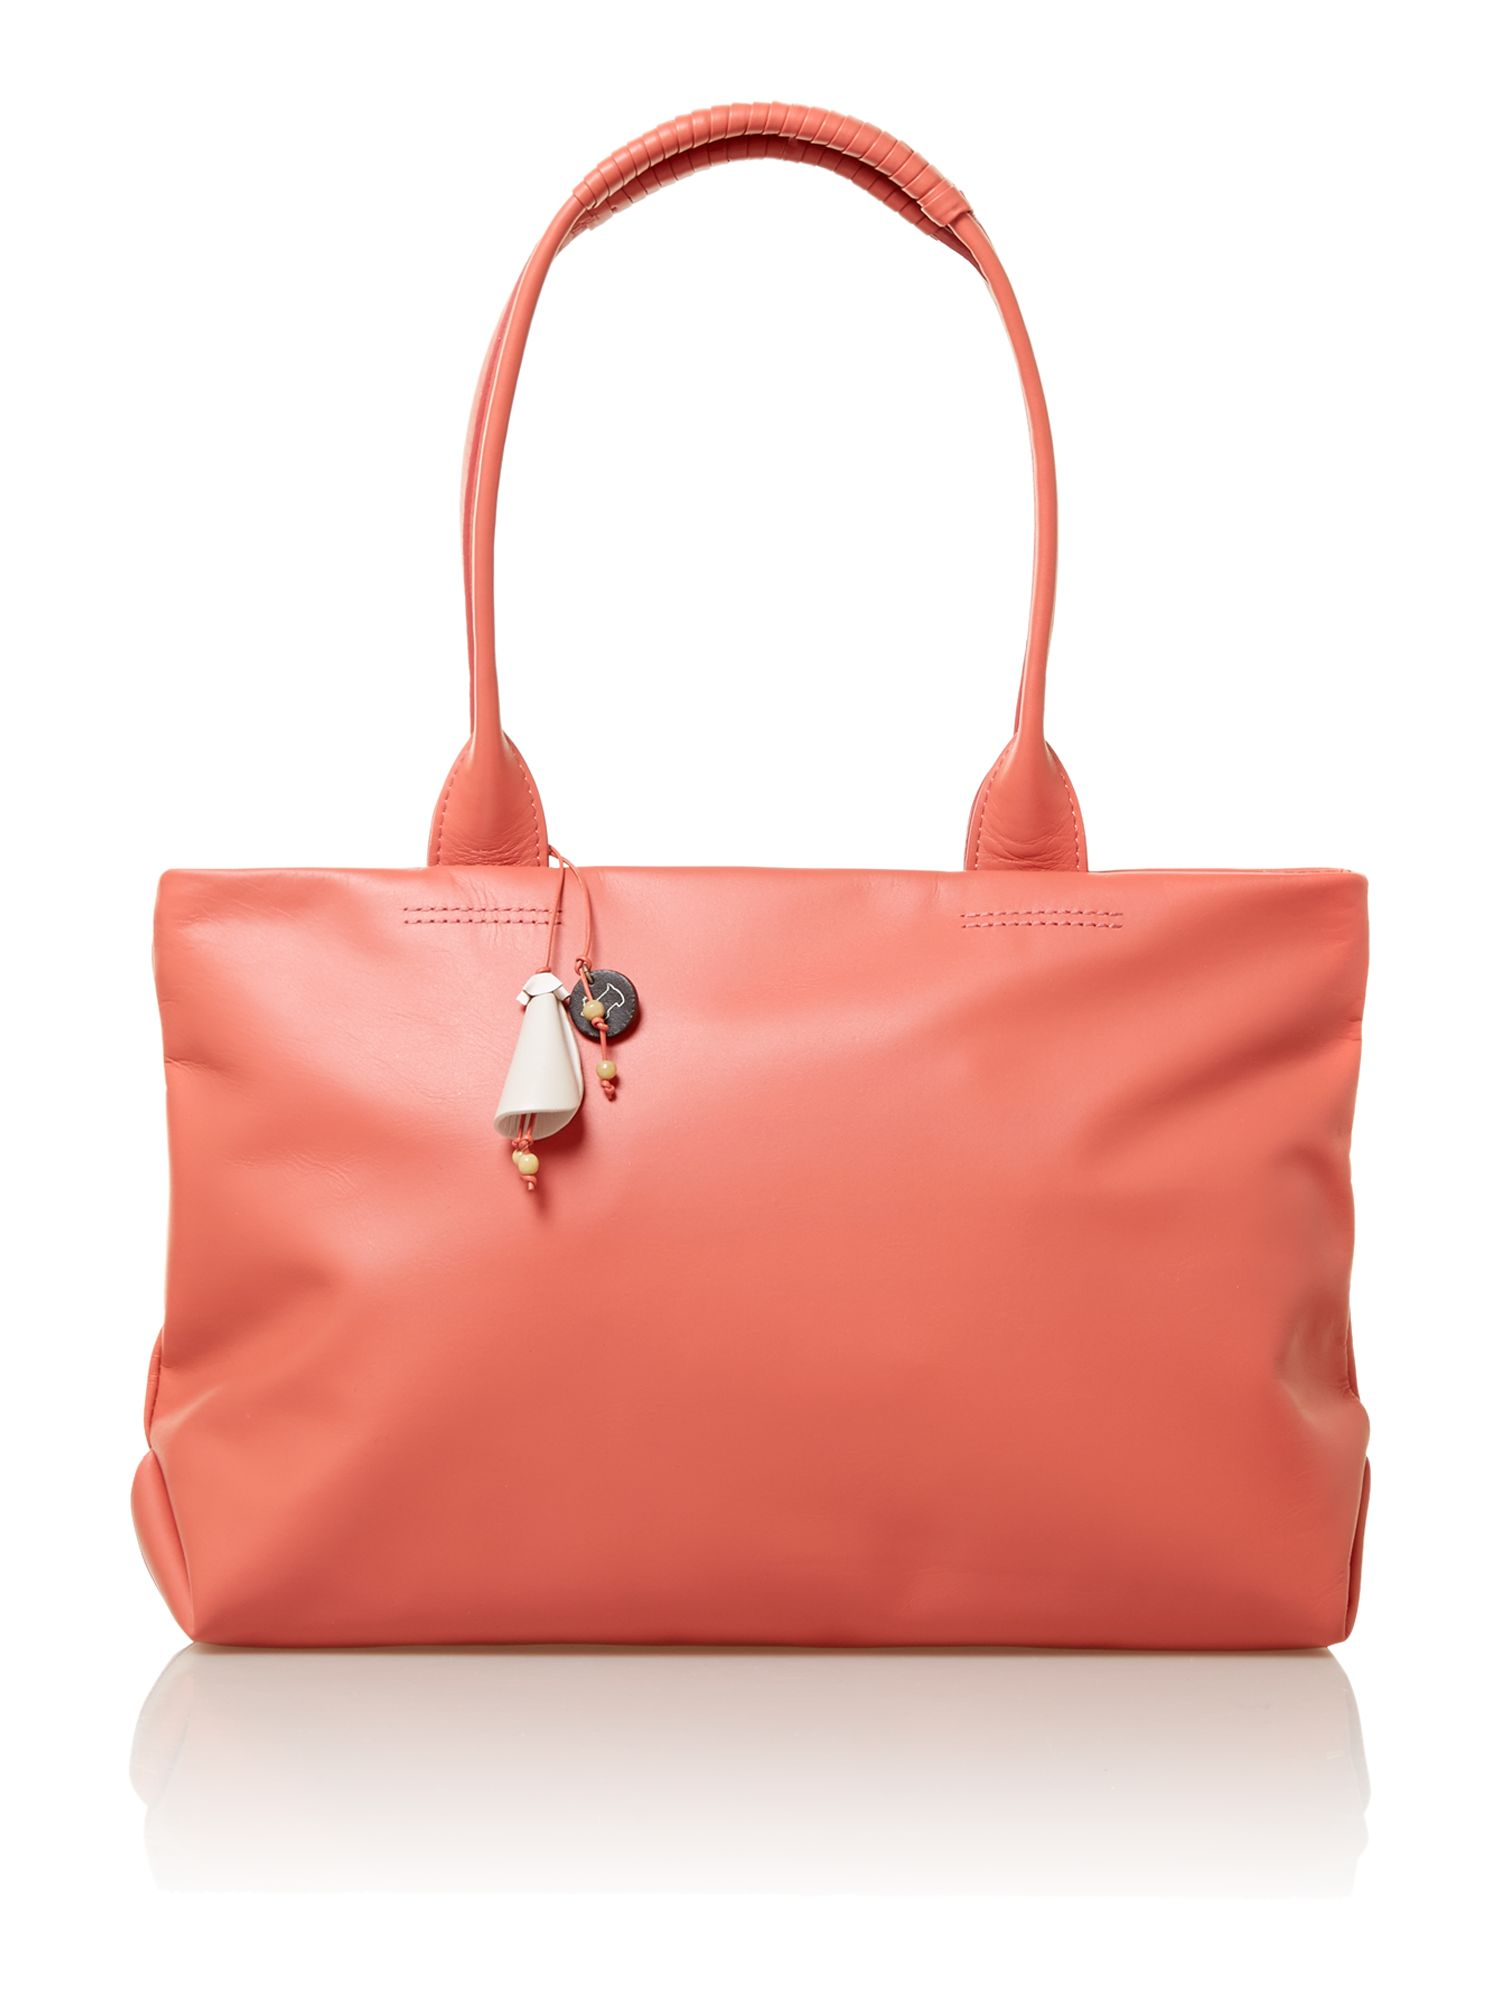 Bayford coral pink medium leather tote bag